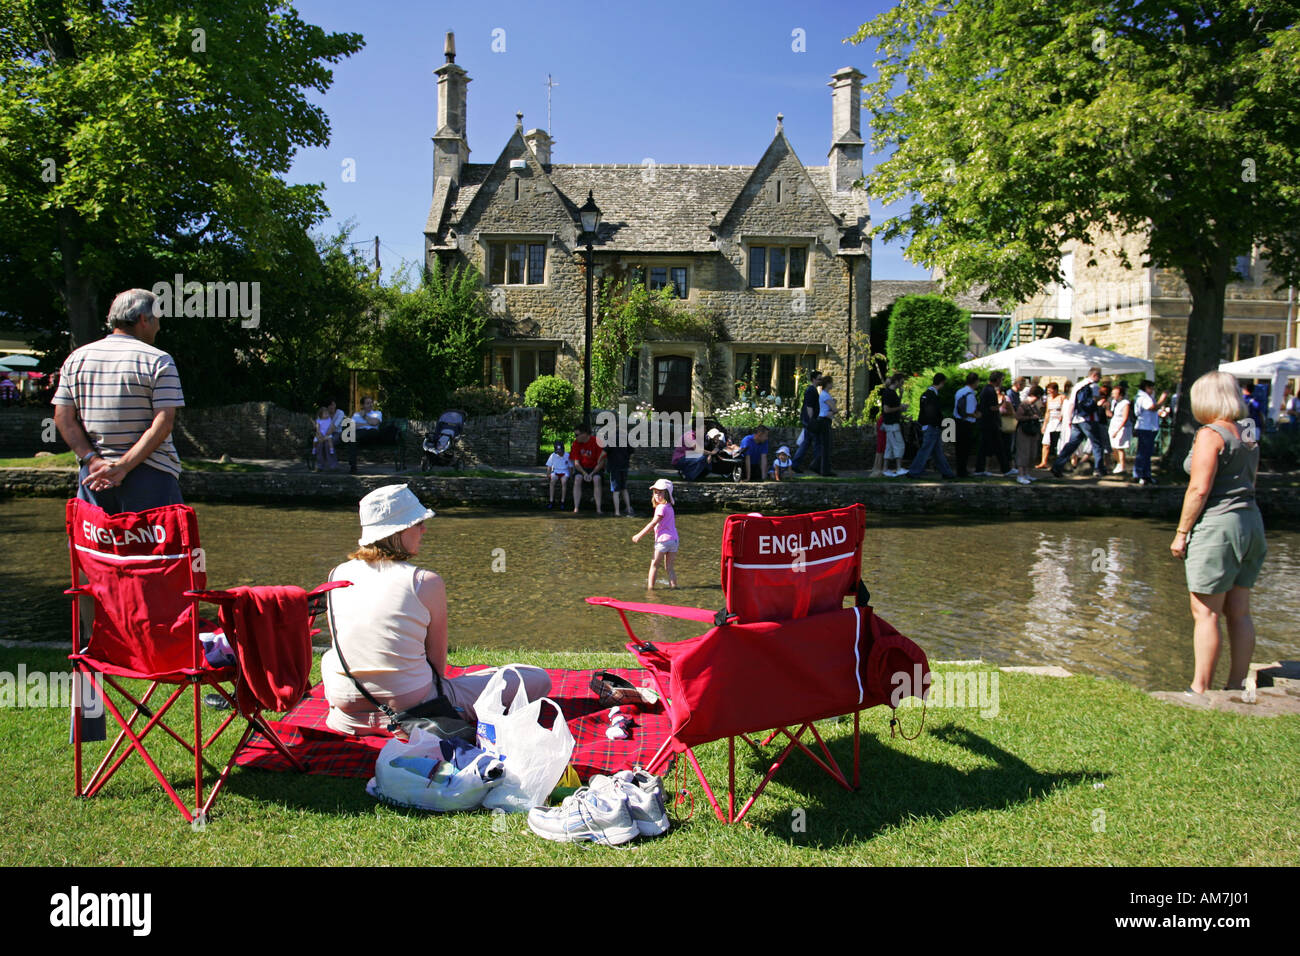 Patriotic English Family Picnic On Red Chairs With England